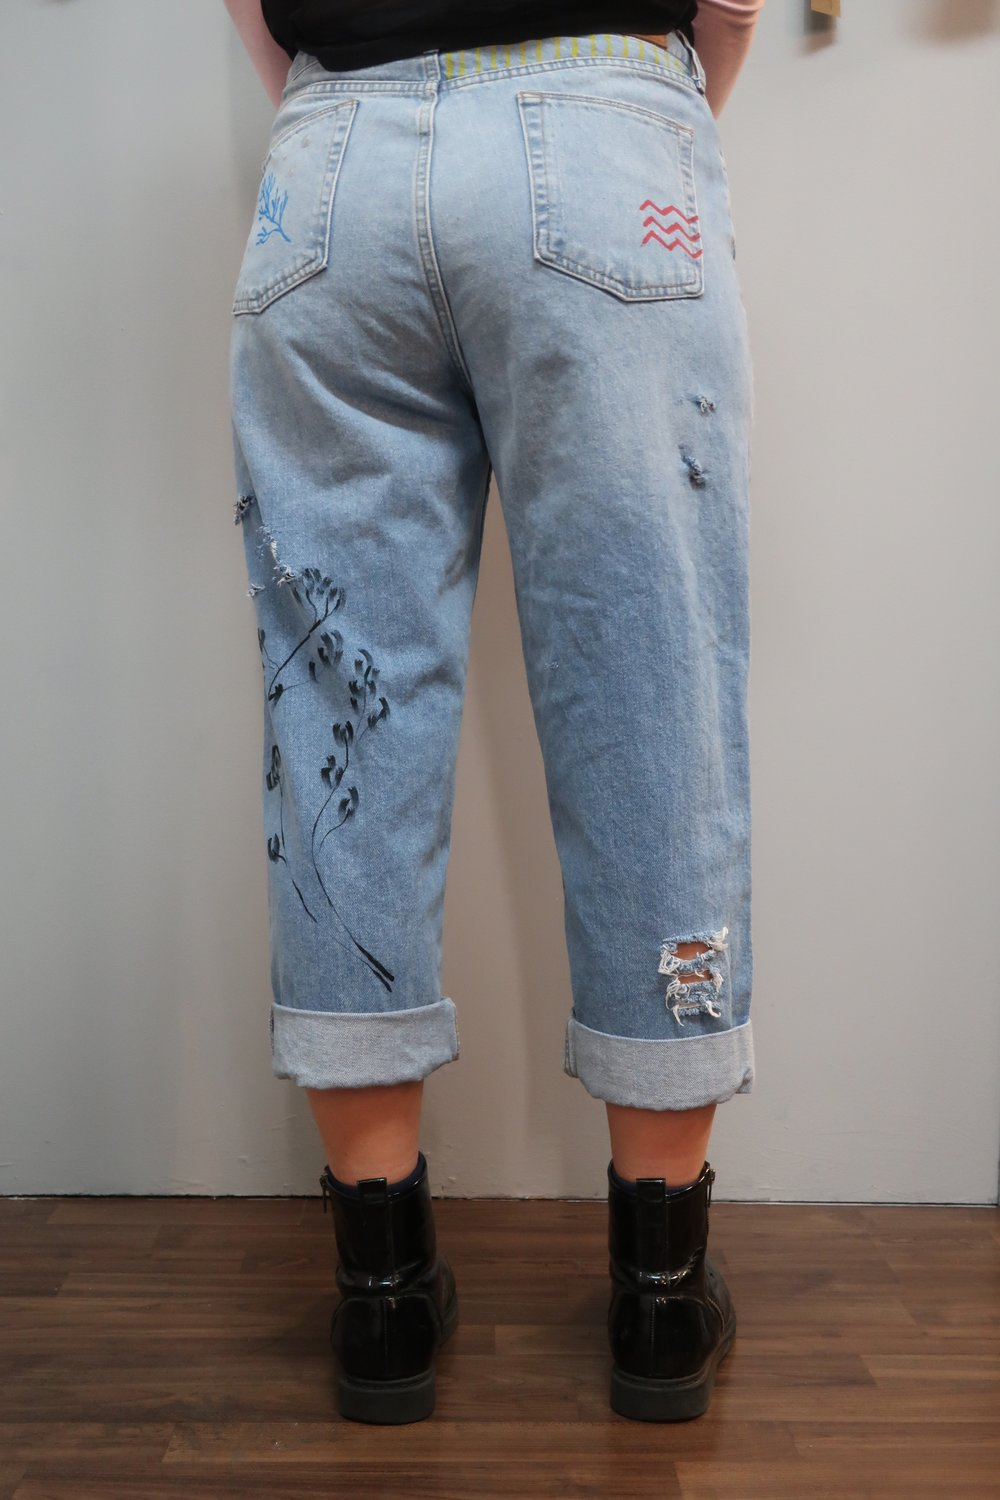 Back view of floral denim pants painted by Alba Rey and drawn on by Be tattoo.jpeg